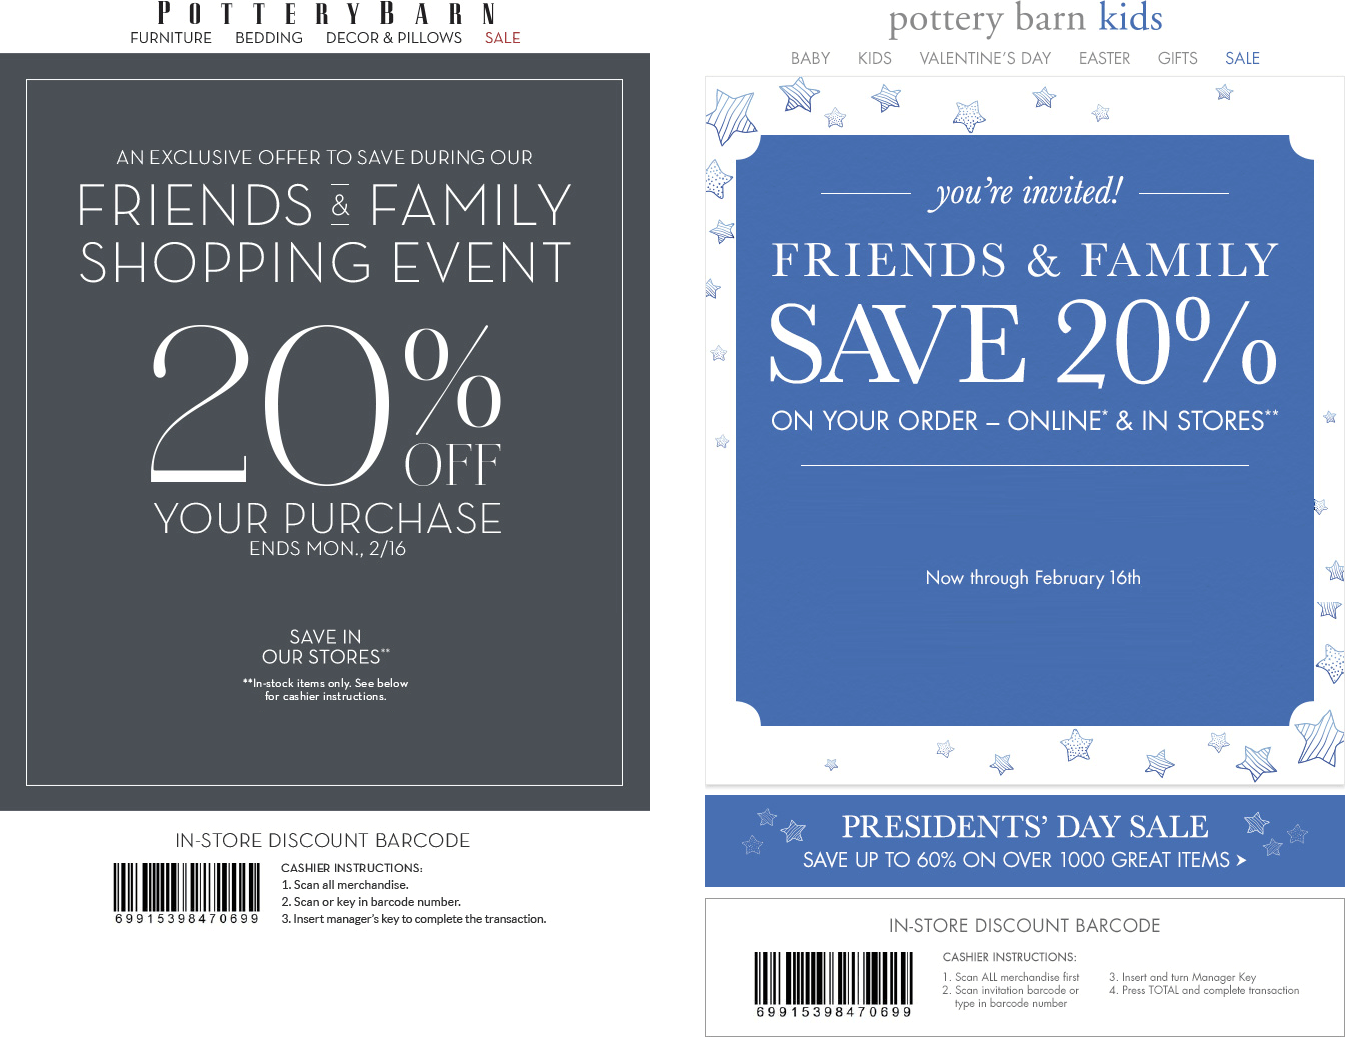 All Active Pottery Barn Kids Promo Codes & Coupons - Up To 40% off in December 2018